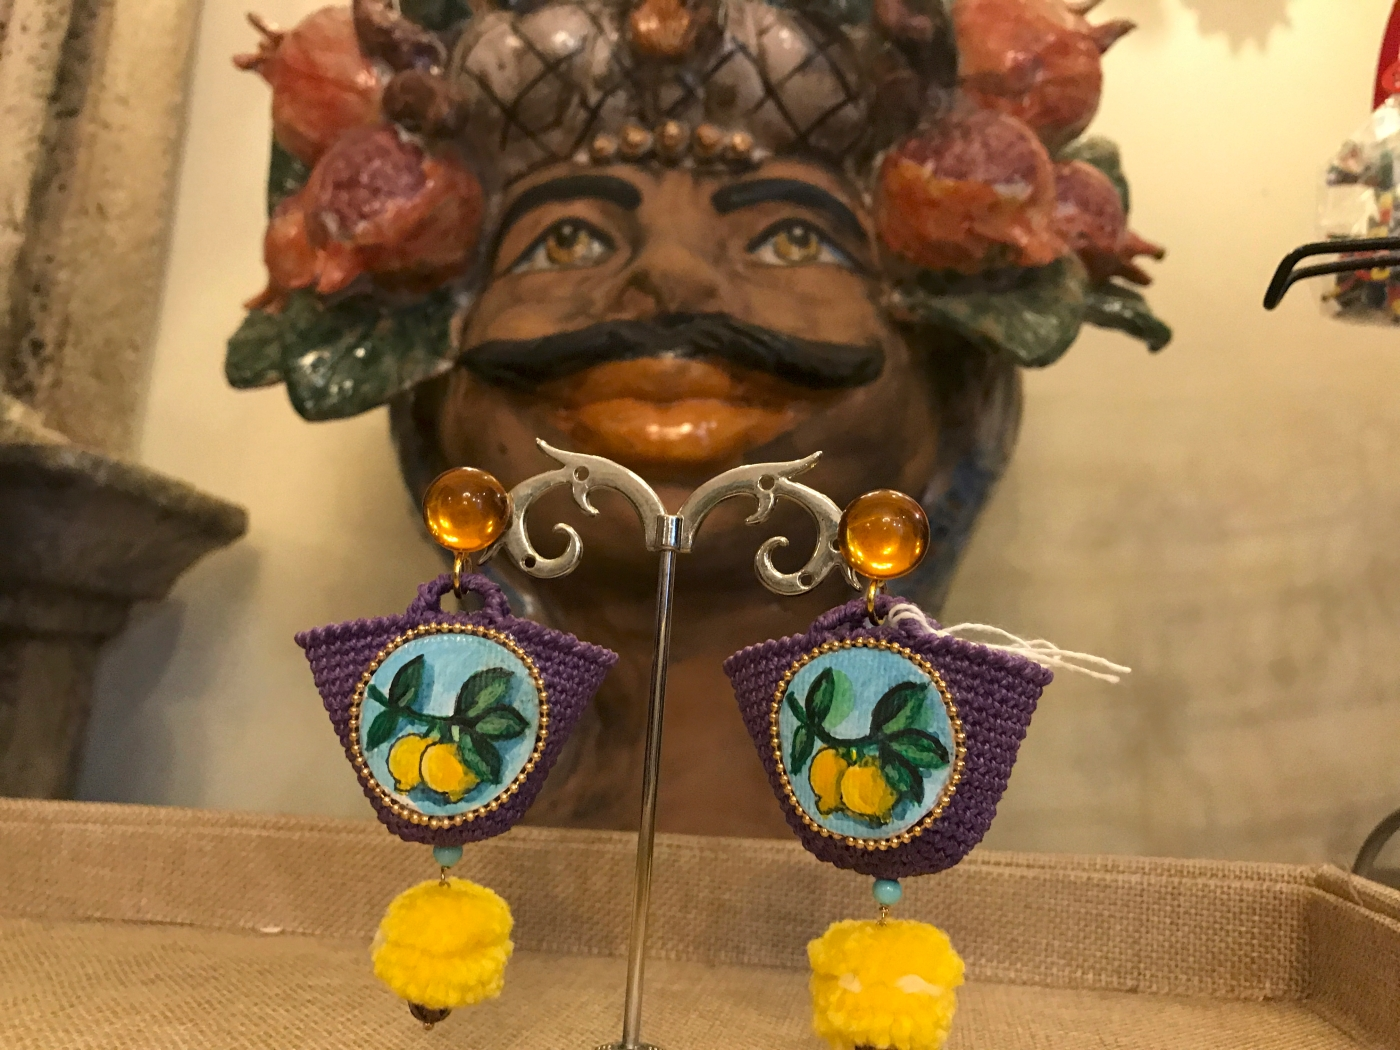 A photo of a Teste di Moro head shaped vase and handmade purple Sicilian basket earrings with yellow lemons and pompoms at Sikuliana Art Atelier in Florence, Italy. Photo Courtesy of FoodWaterShoes